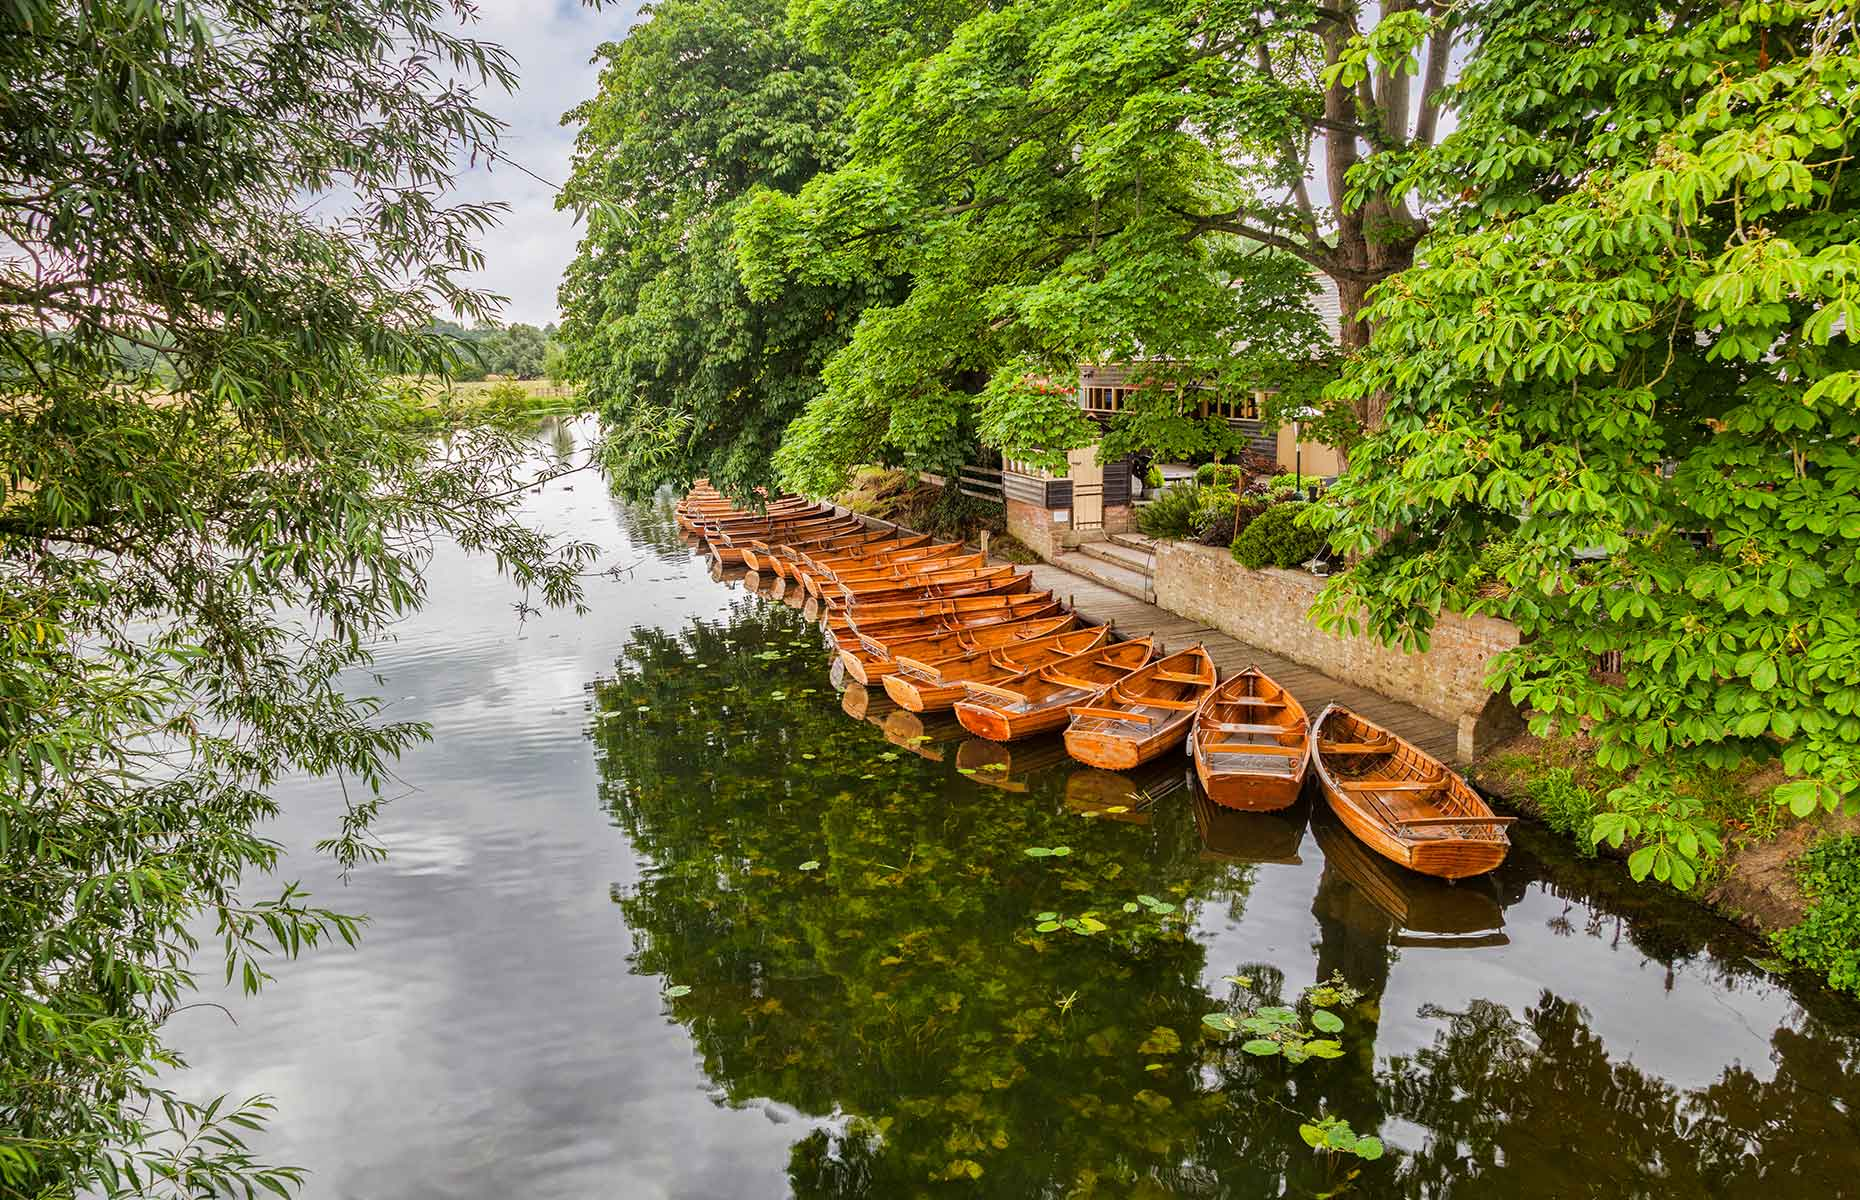 Boats on the River Stour in summer at Dedham Essex (Image: travellight/Shutterstock)